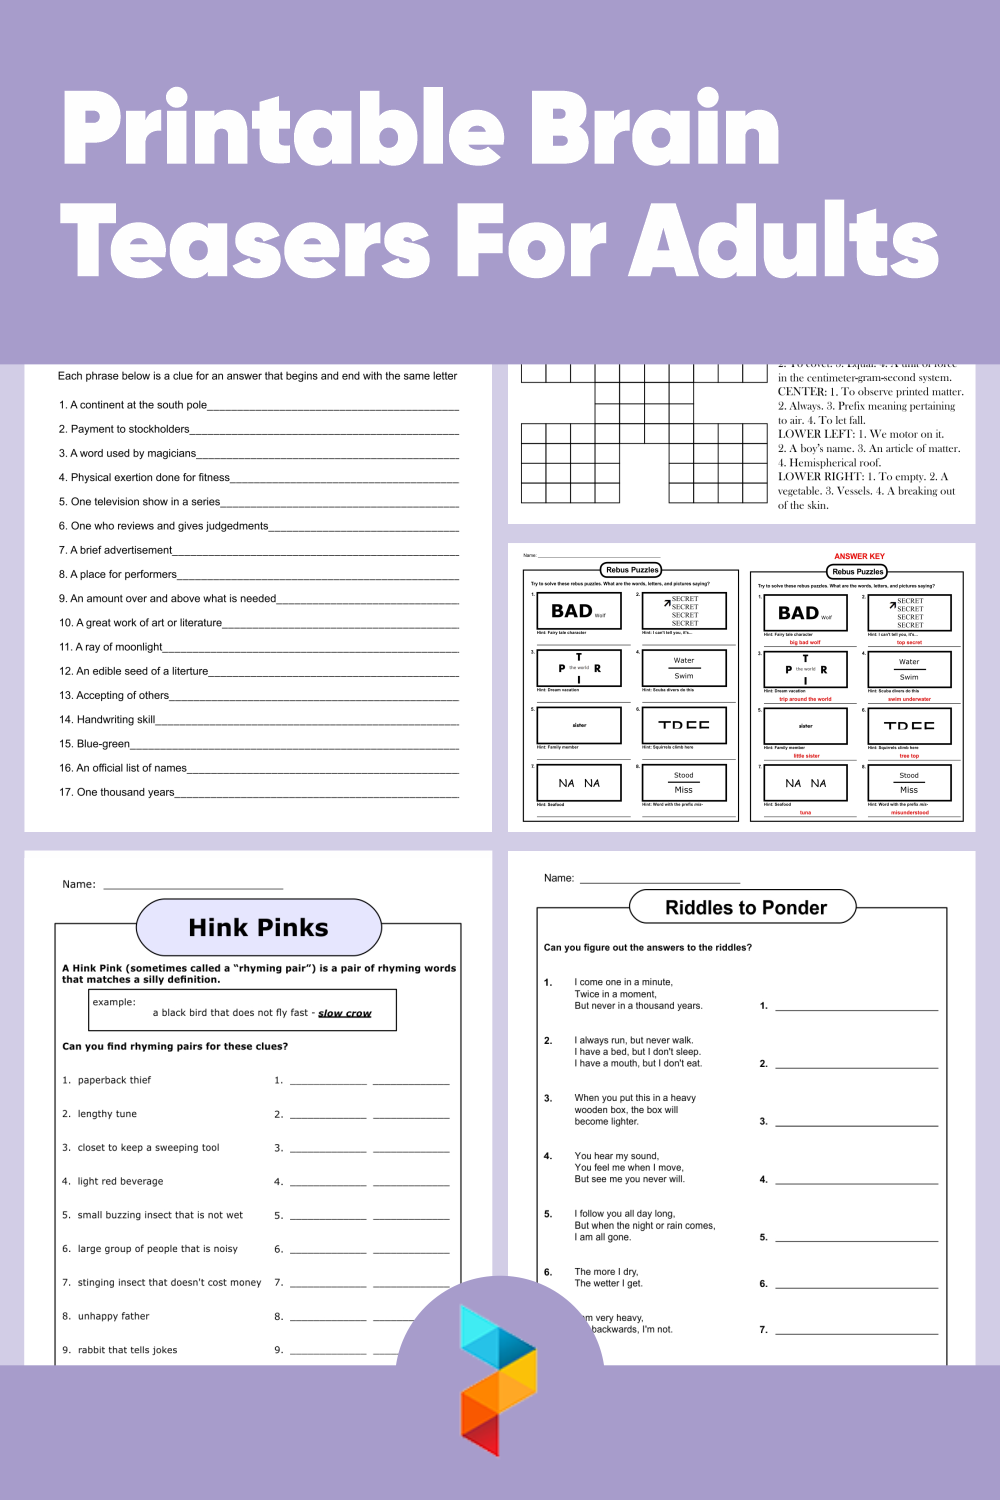 Printable Brain Teasers For Adults